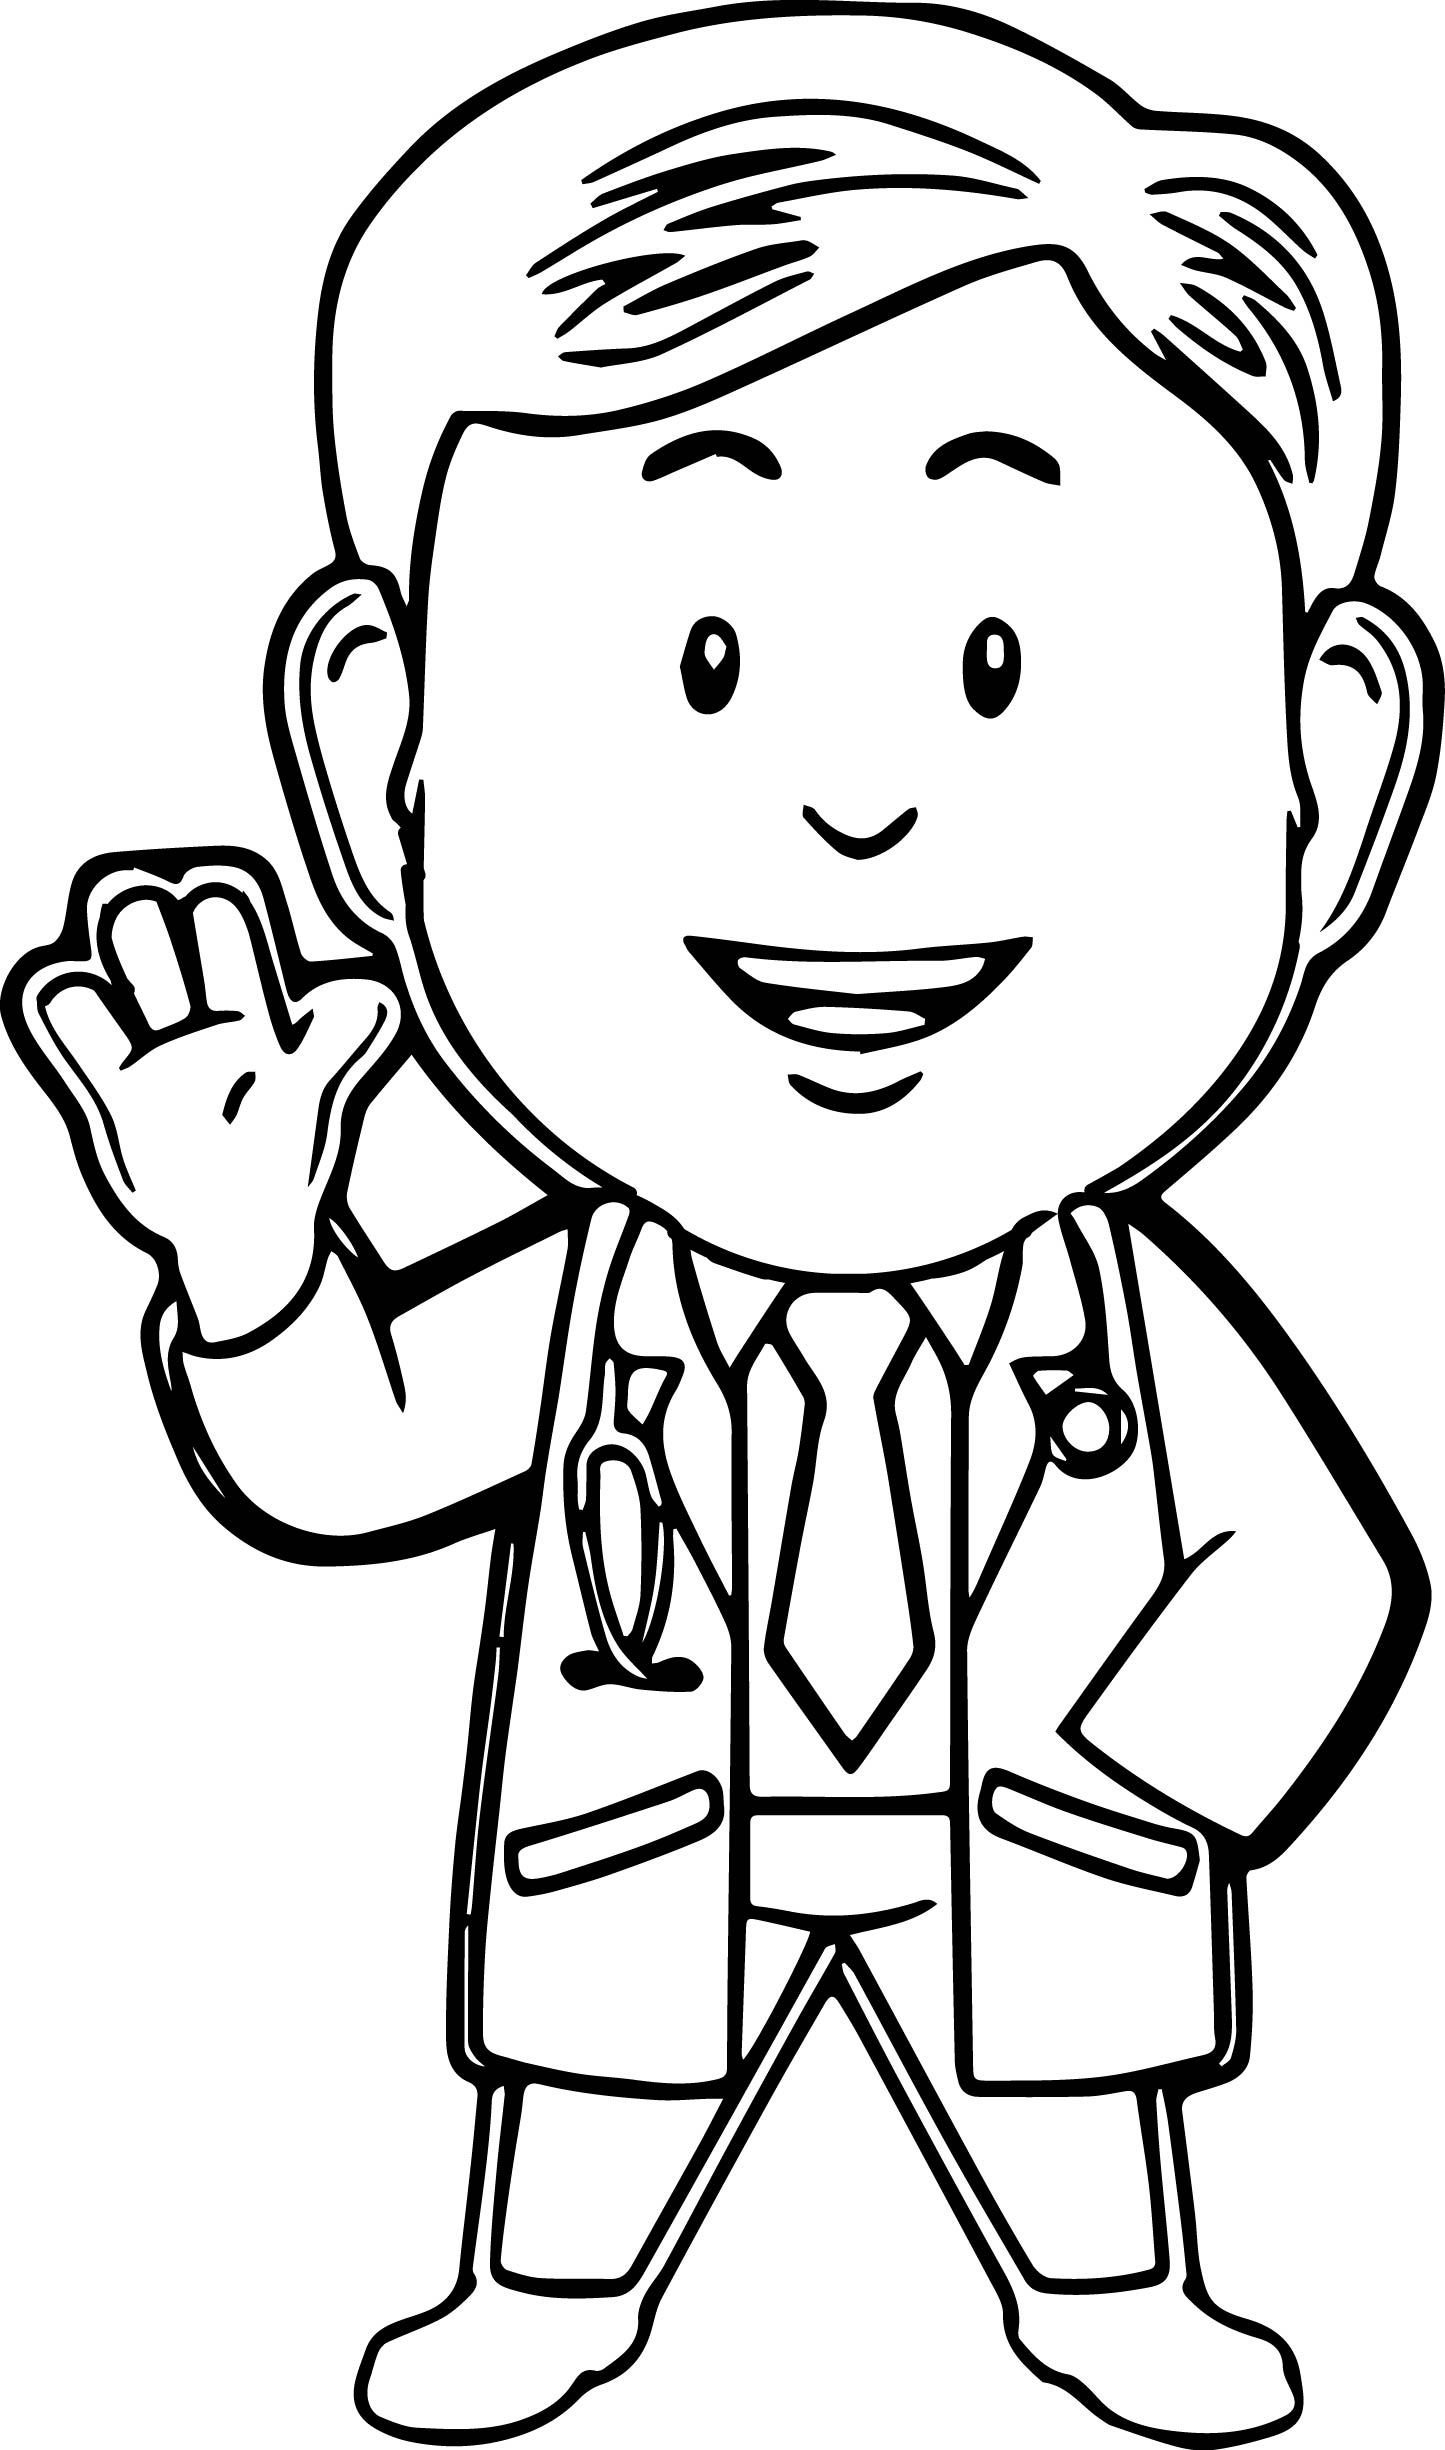 doctor cartoon drawing at getdrawings com free for personal use rh getdrawings com Teacher Clip Art Black and White Dentist Clip Art Black and White